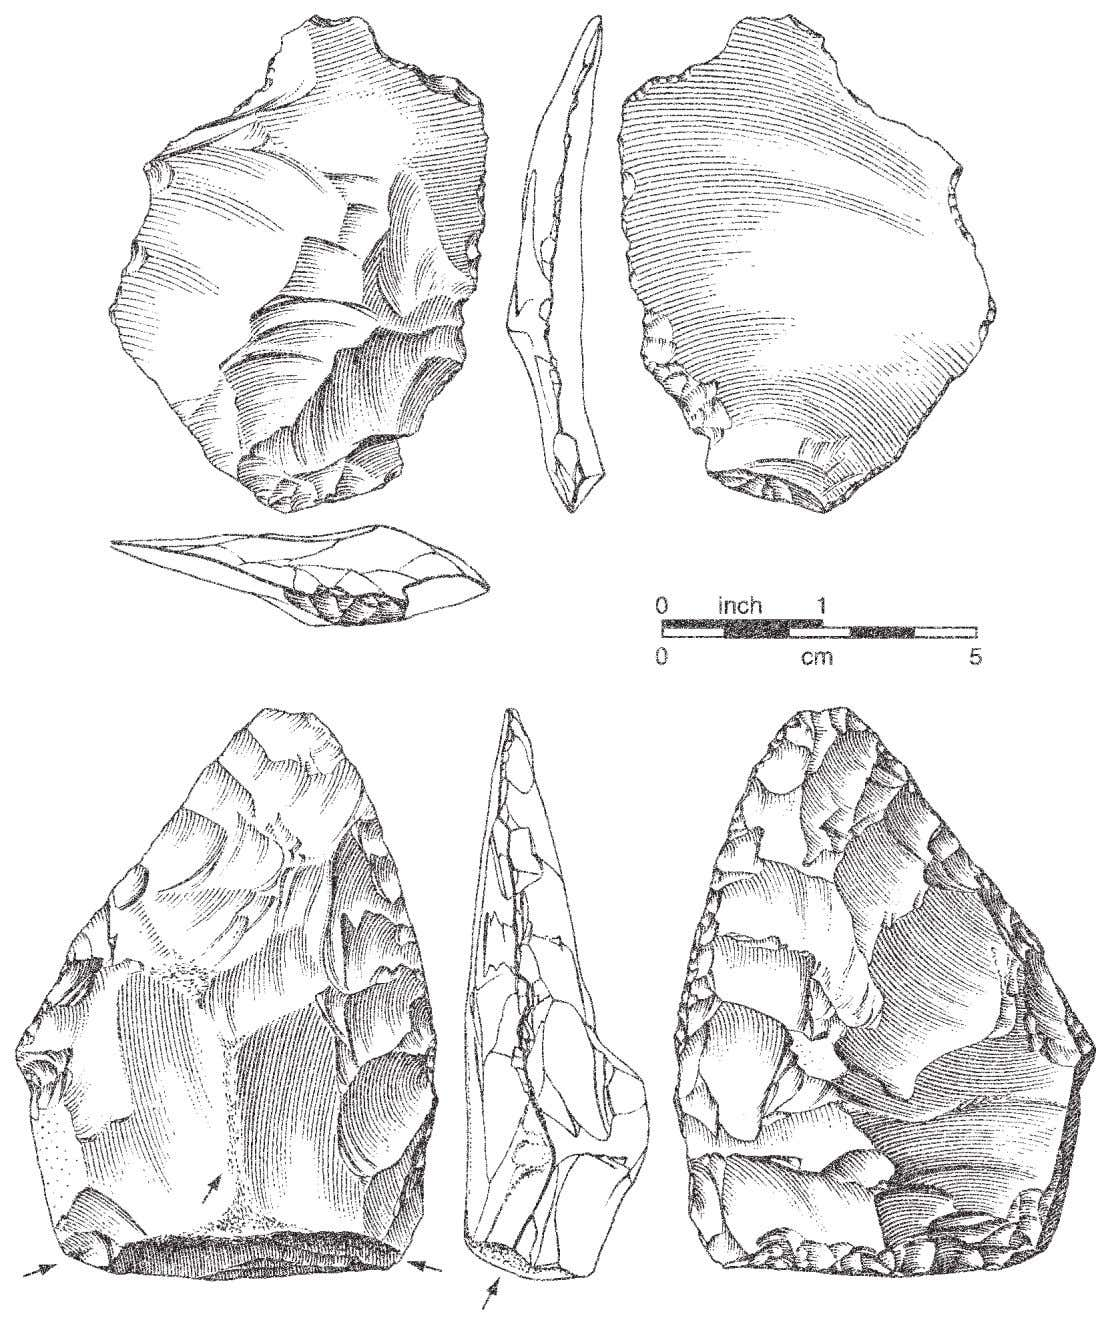 Figure 6.2 Grotte XVI, couche C. Biface thinning flake J11-597 and biface K17-855. Arrows indicate